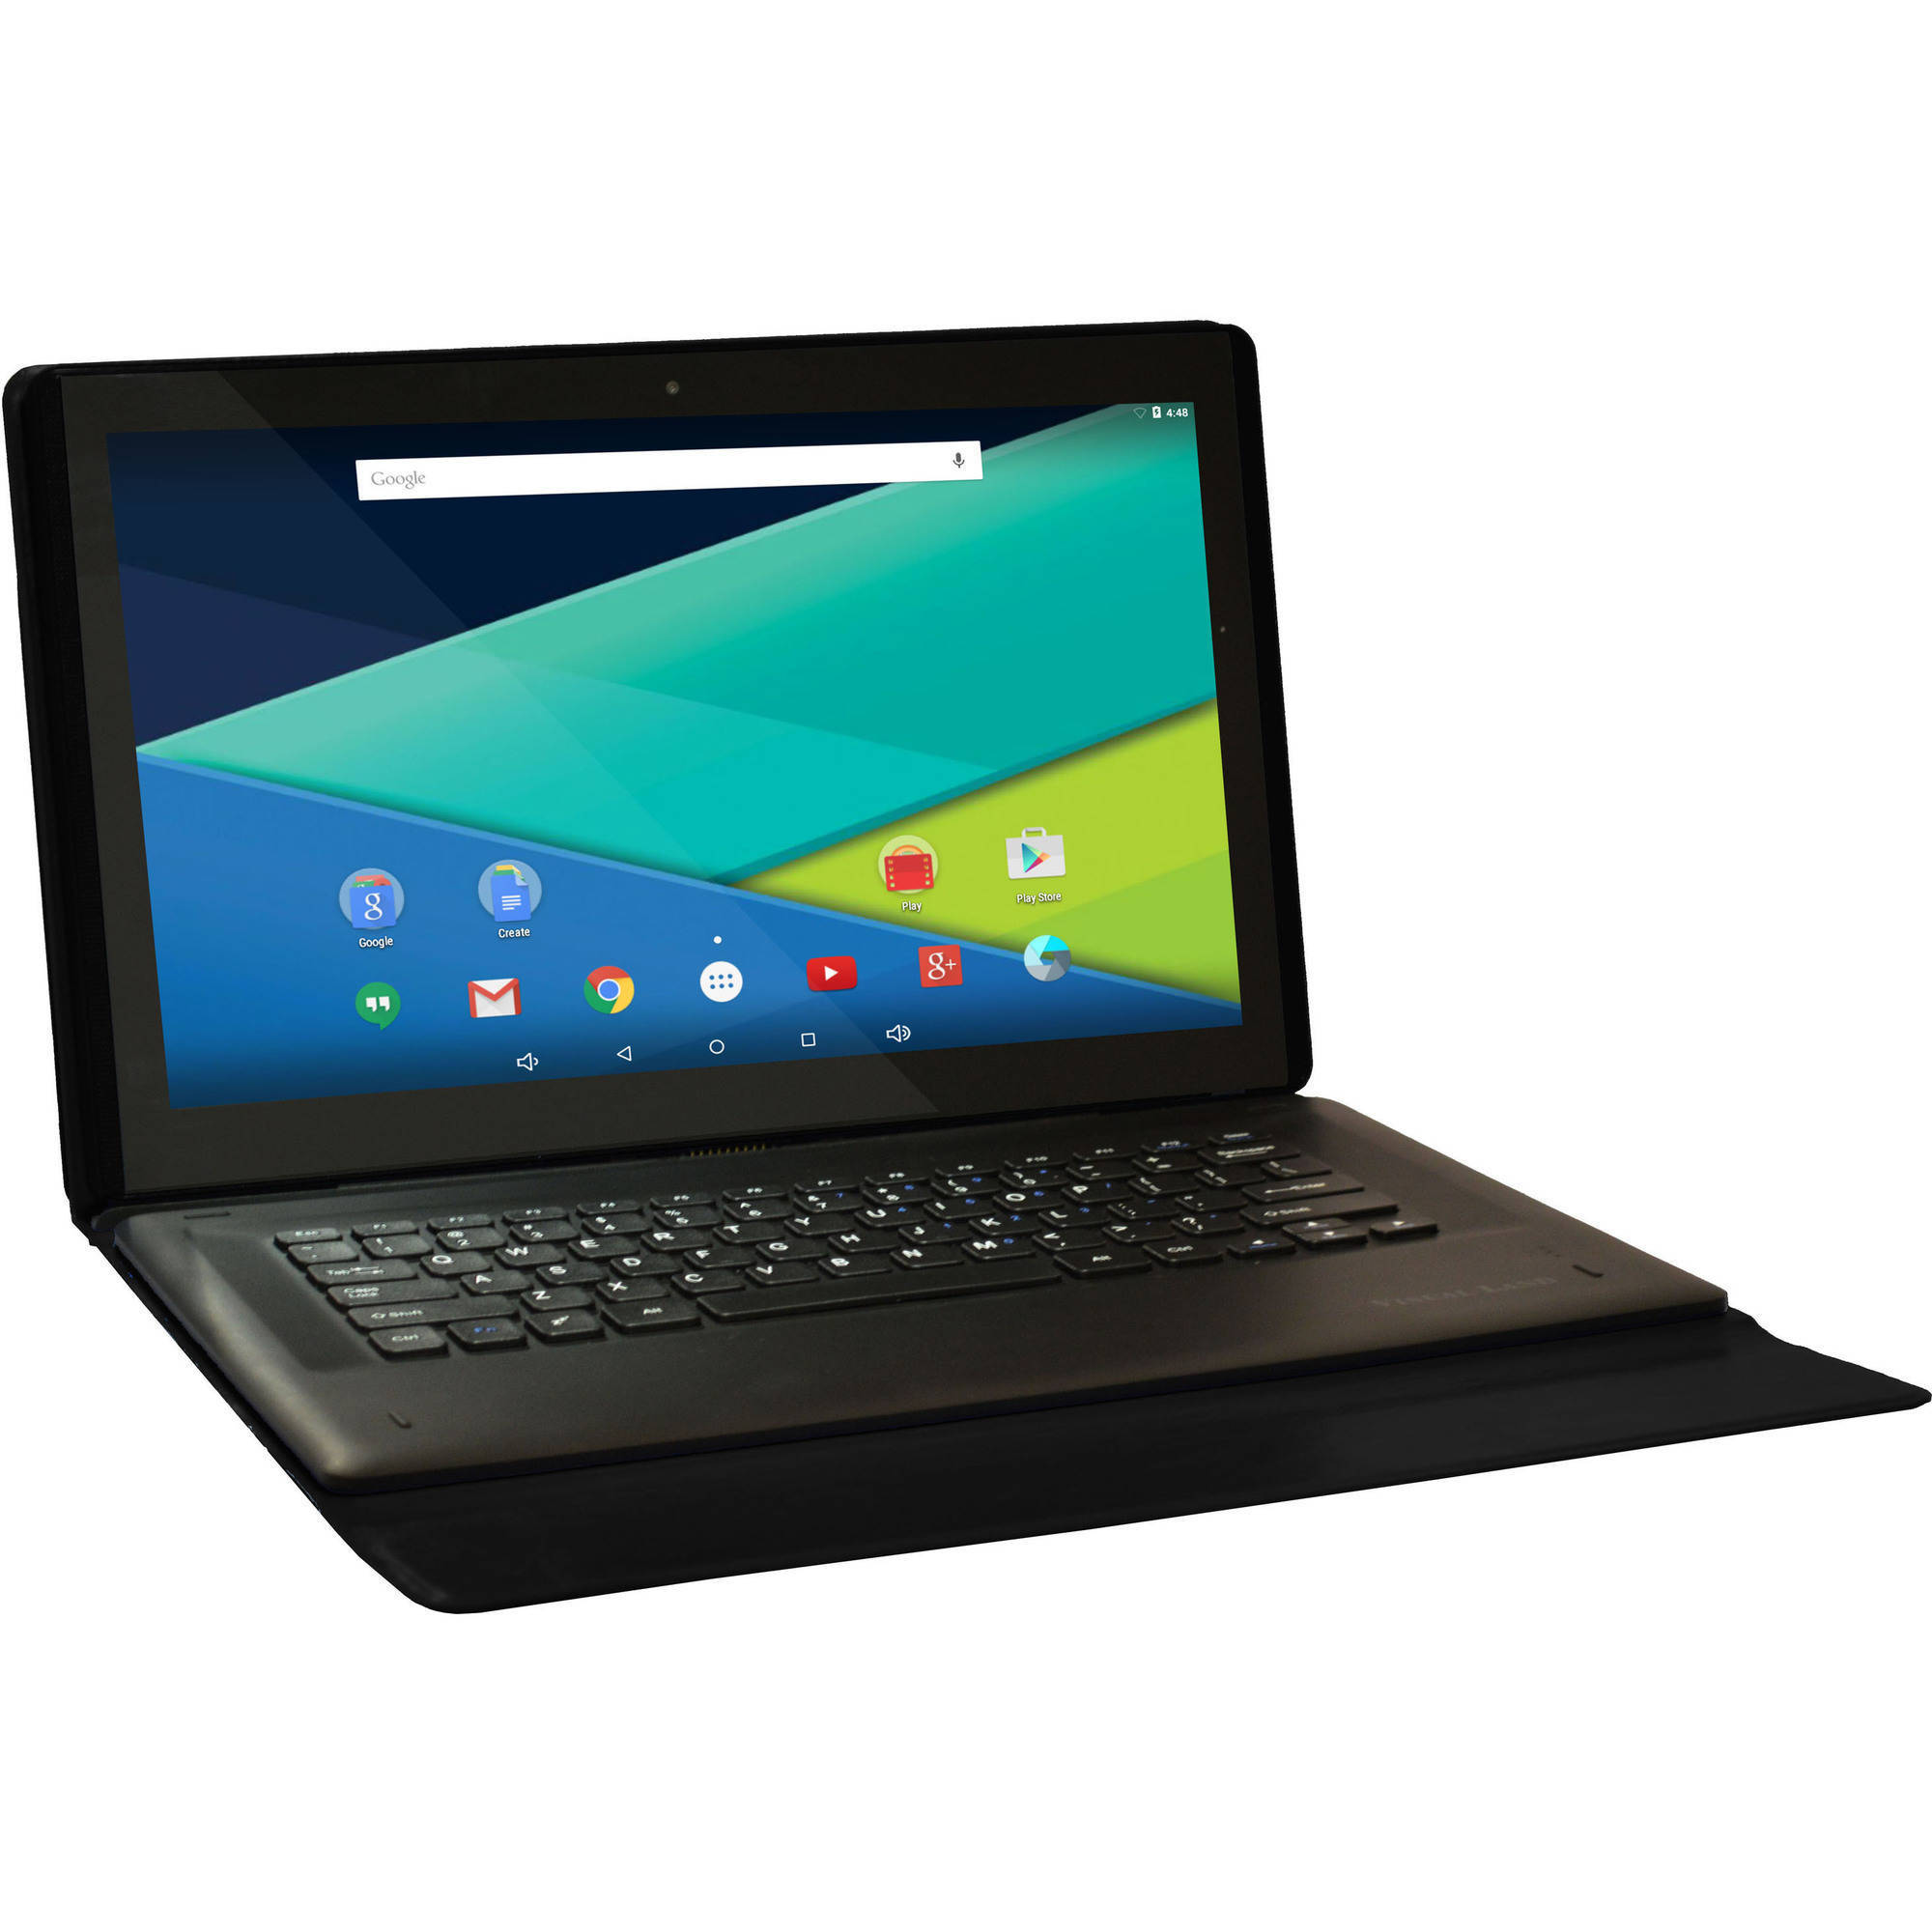 "Visual Land 13.3"" IPS QuadCore 2-In-1 Tablet - 64GB includes Docking Keyboard Case - Android 5.1 Lollipop"